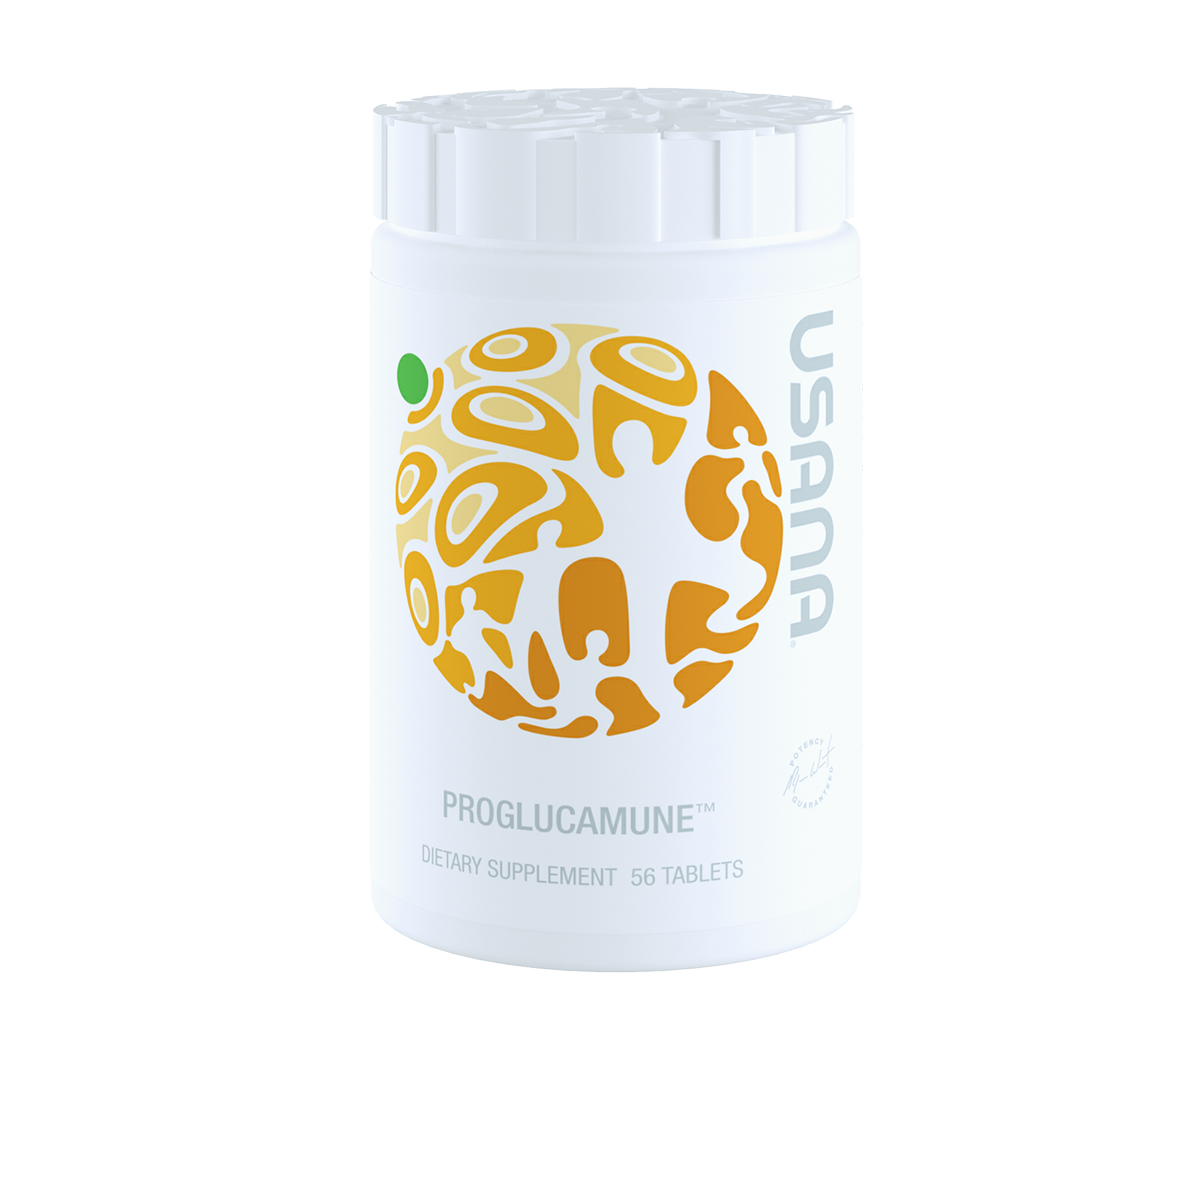 Usana 174 Proglucamune 174 With Incelligence Performance Vitamins